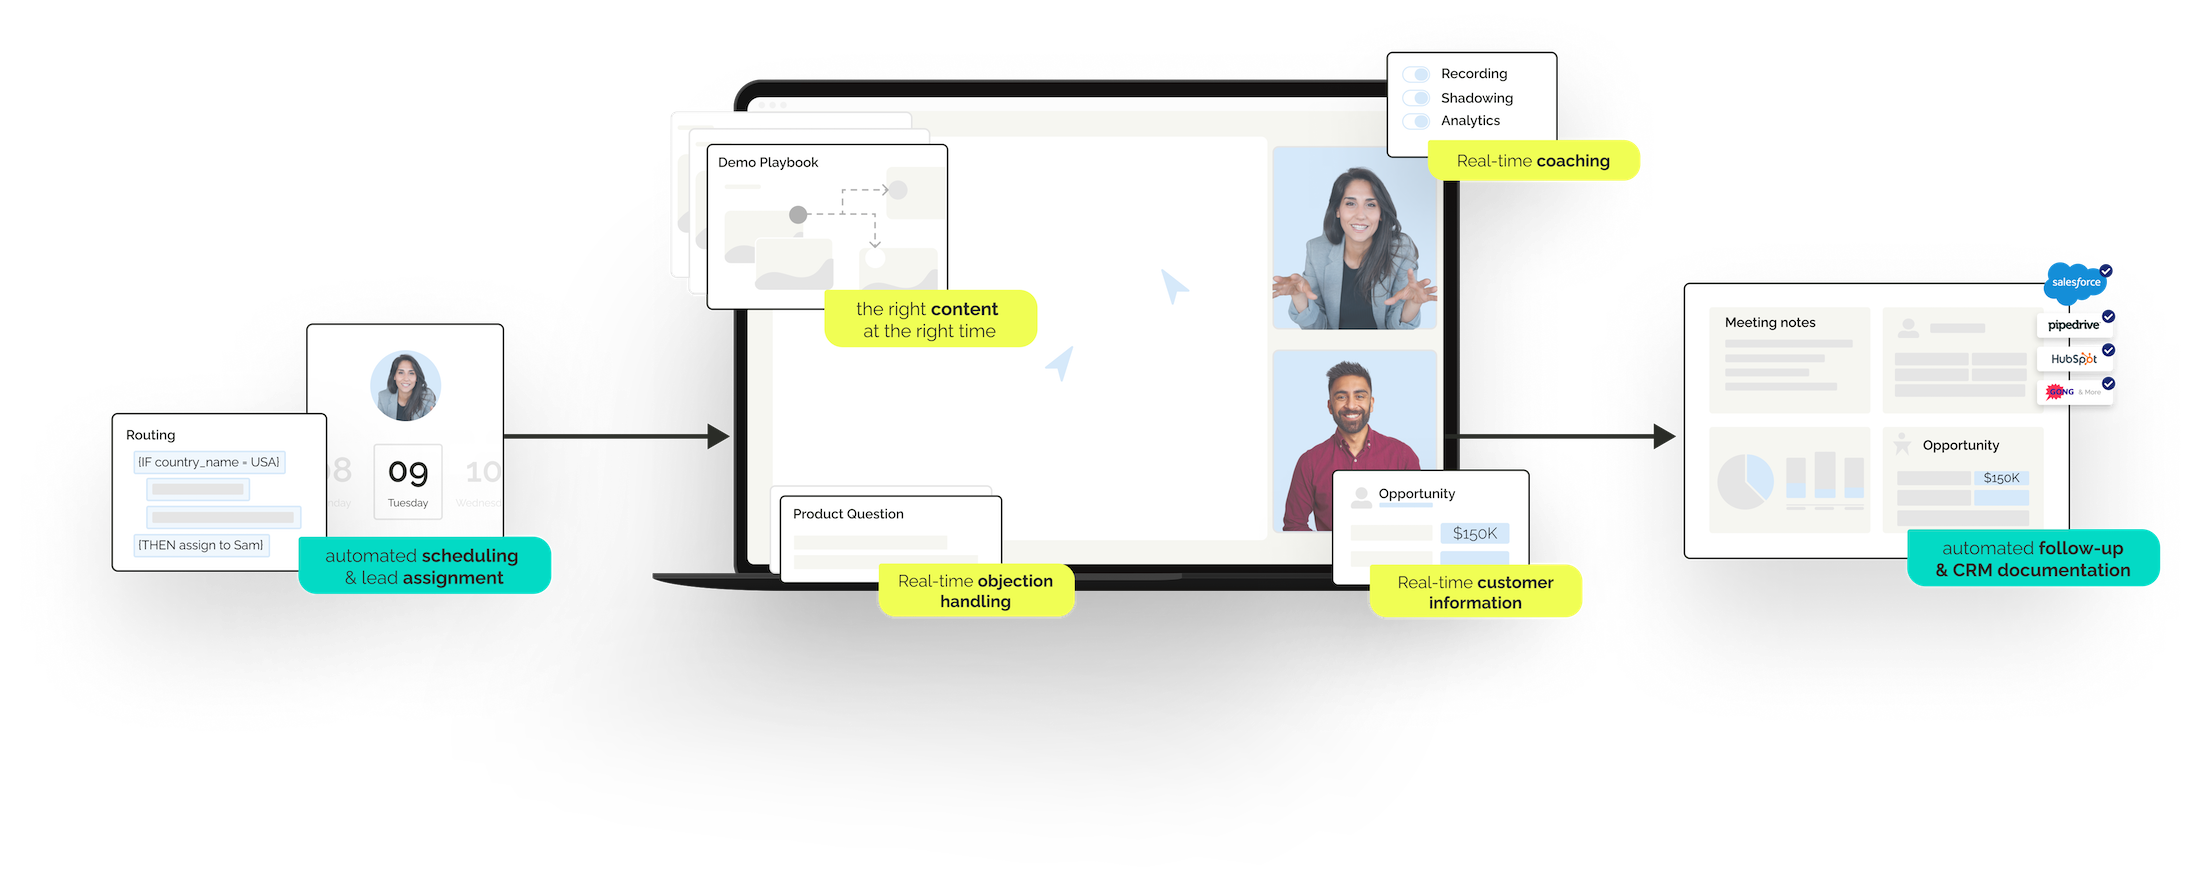 Demodesk automates non-selling tasks & gives reps all the tools & resources they need in real-time to win more deals, faster.